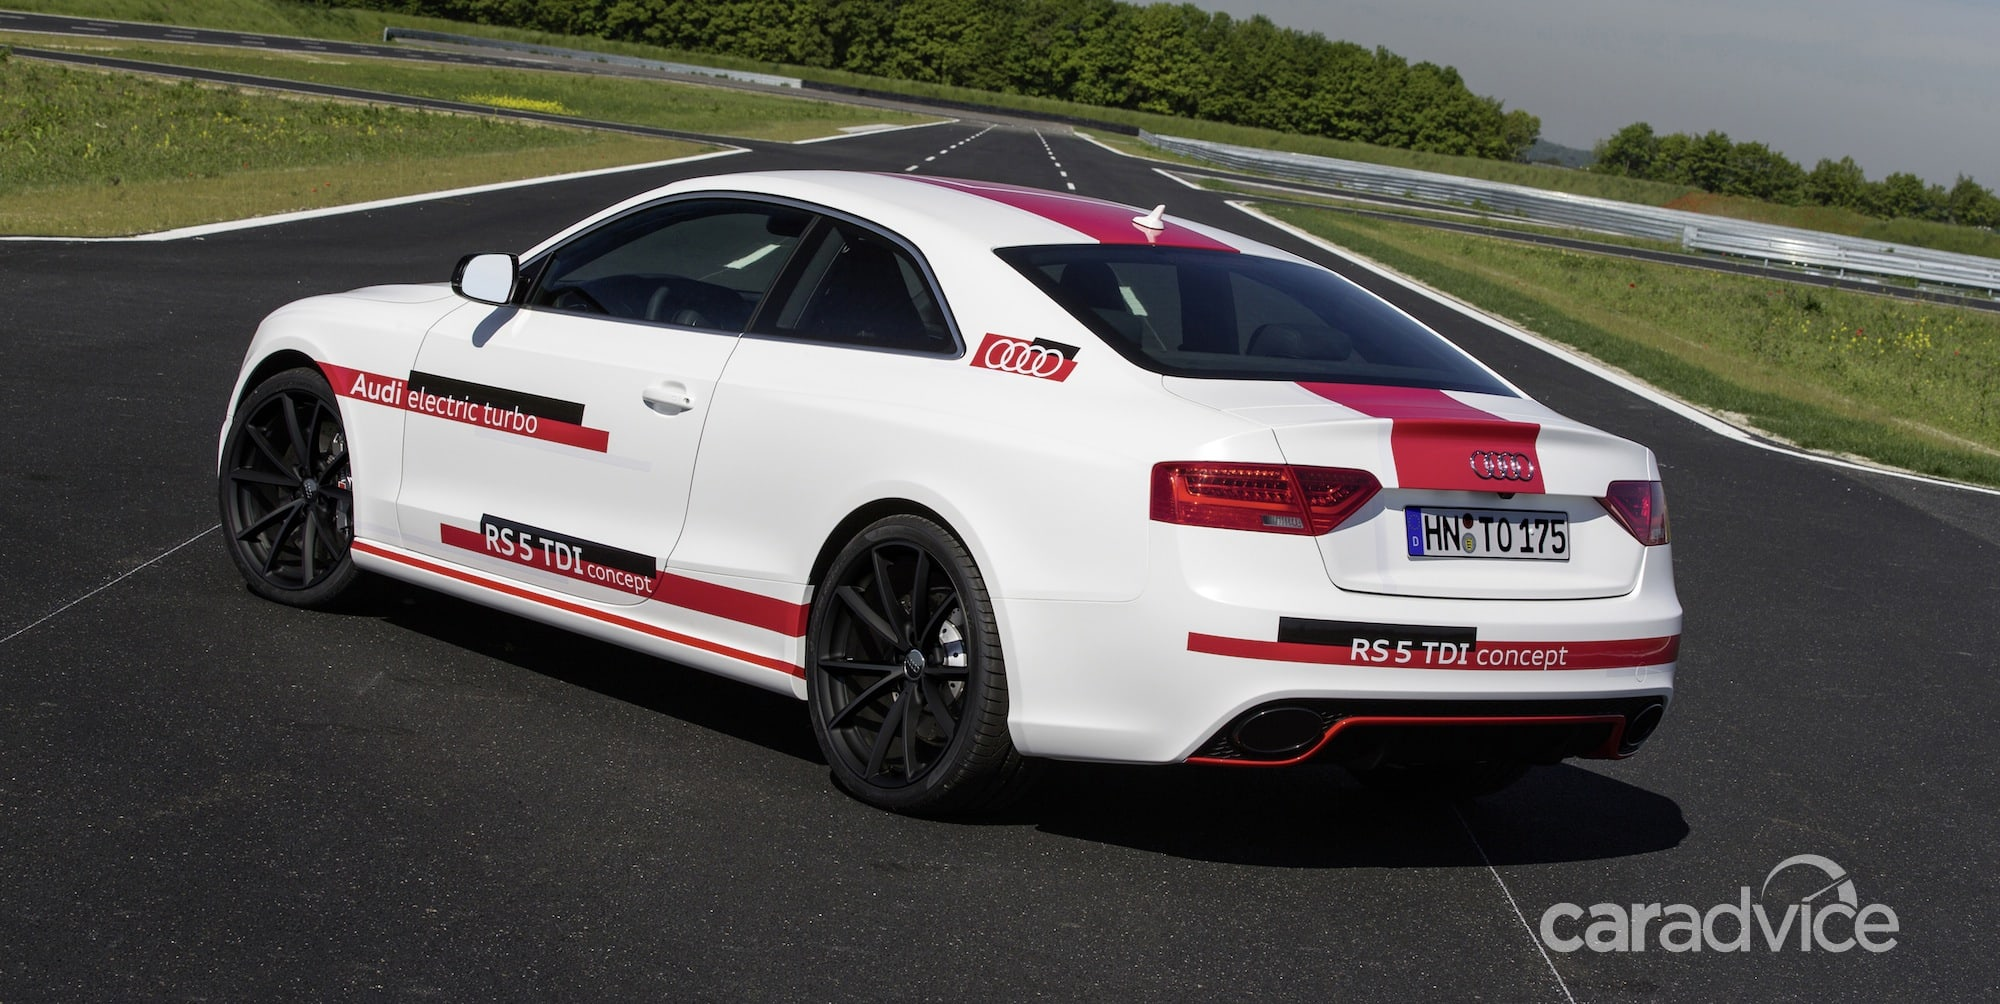 audi rs5 tdi concept review  caradvice